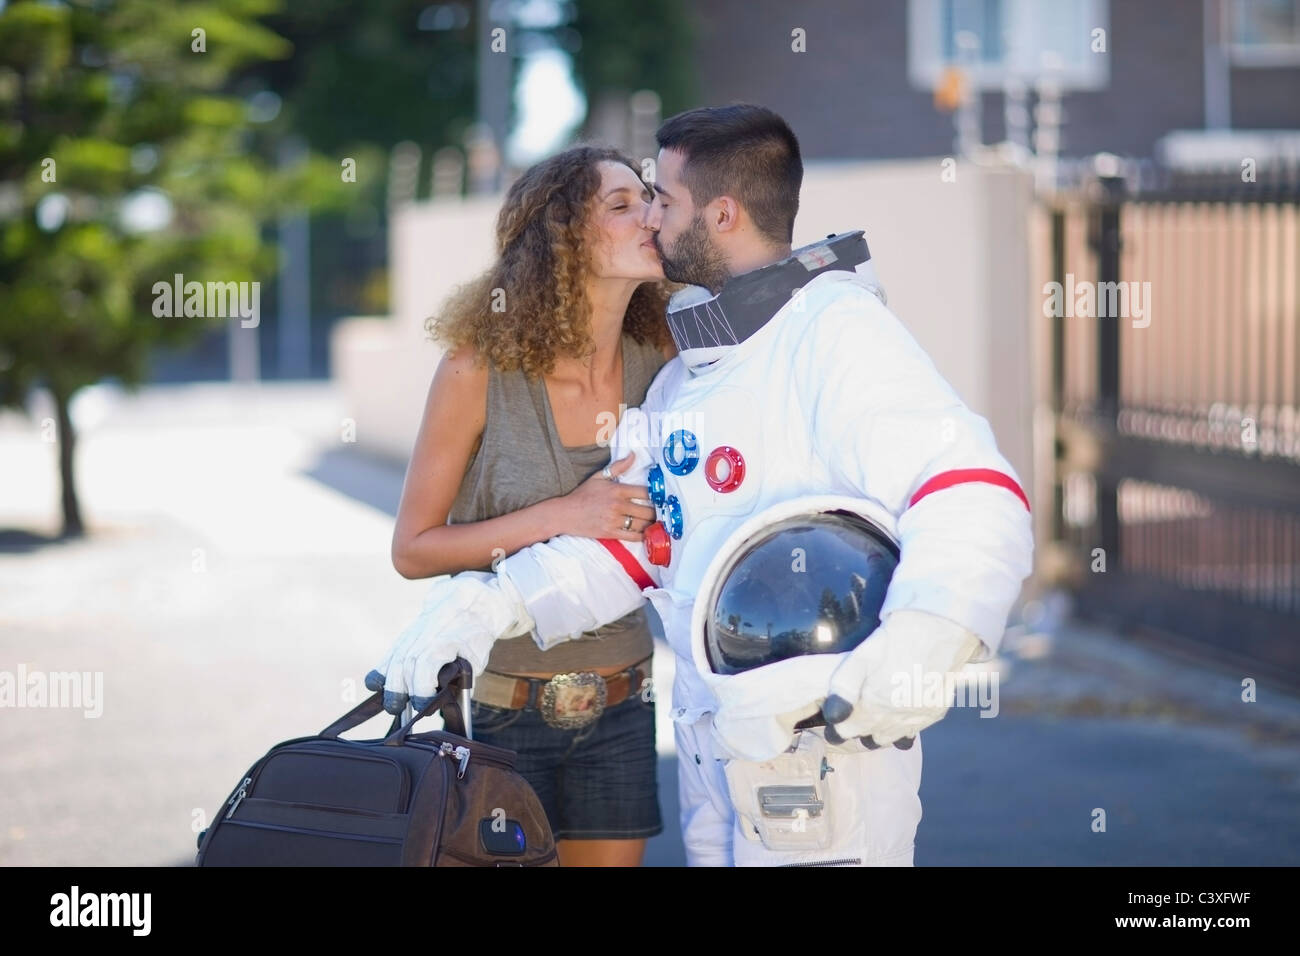 Woman kissing an astronaut - Stock Image